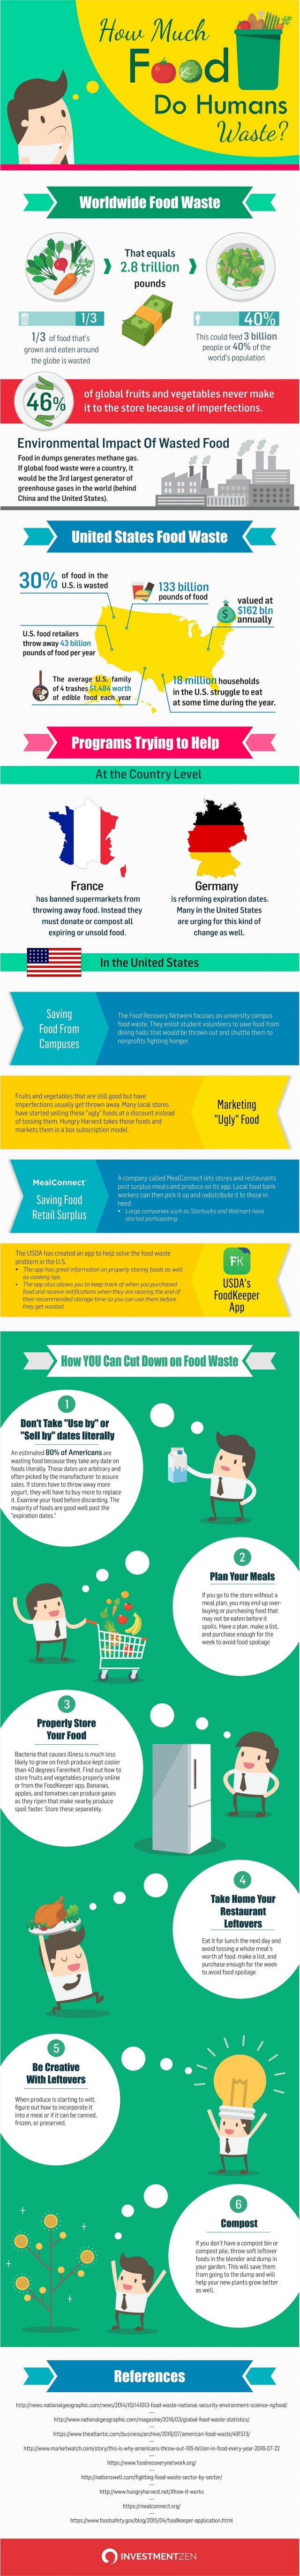 How Much Food Do Humans Waste?